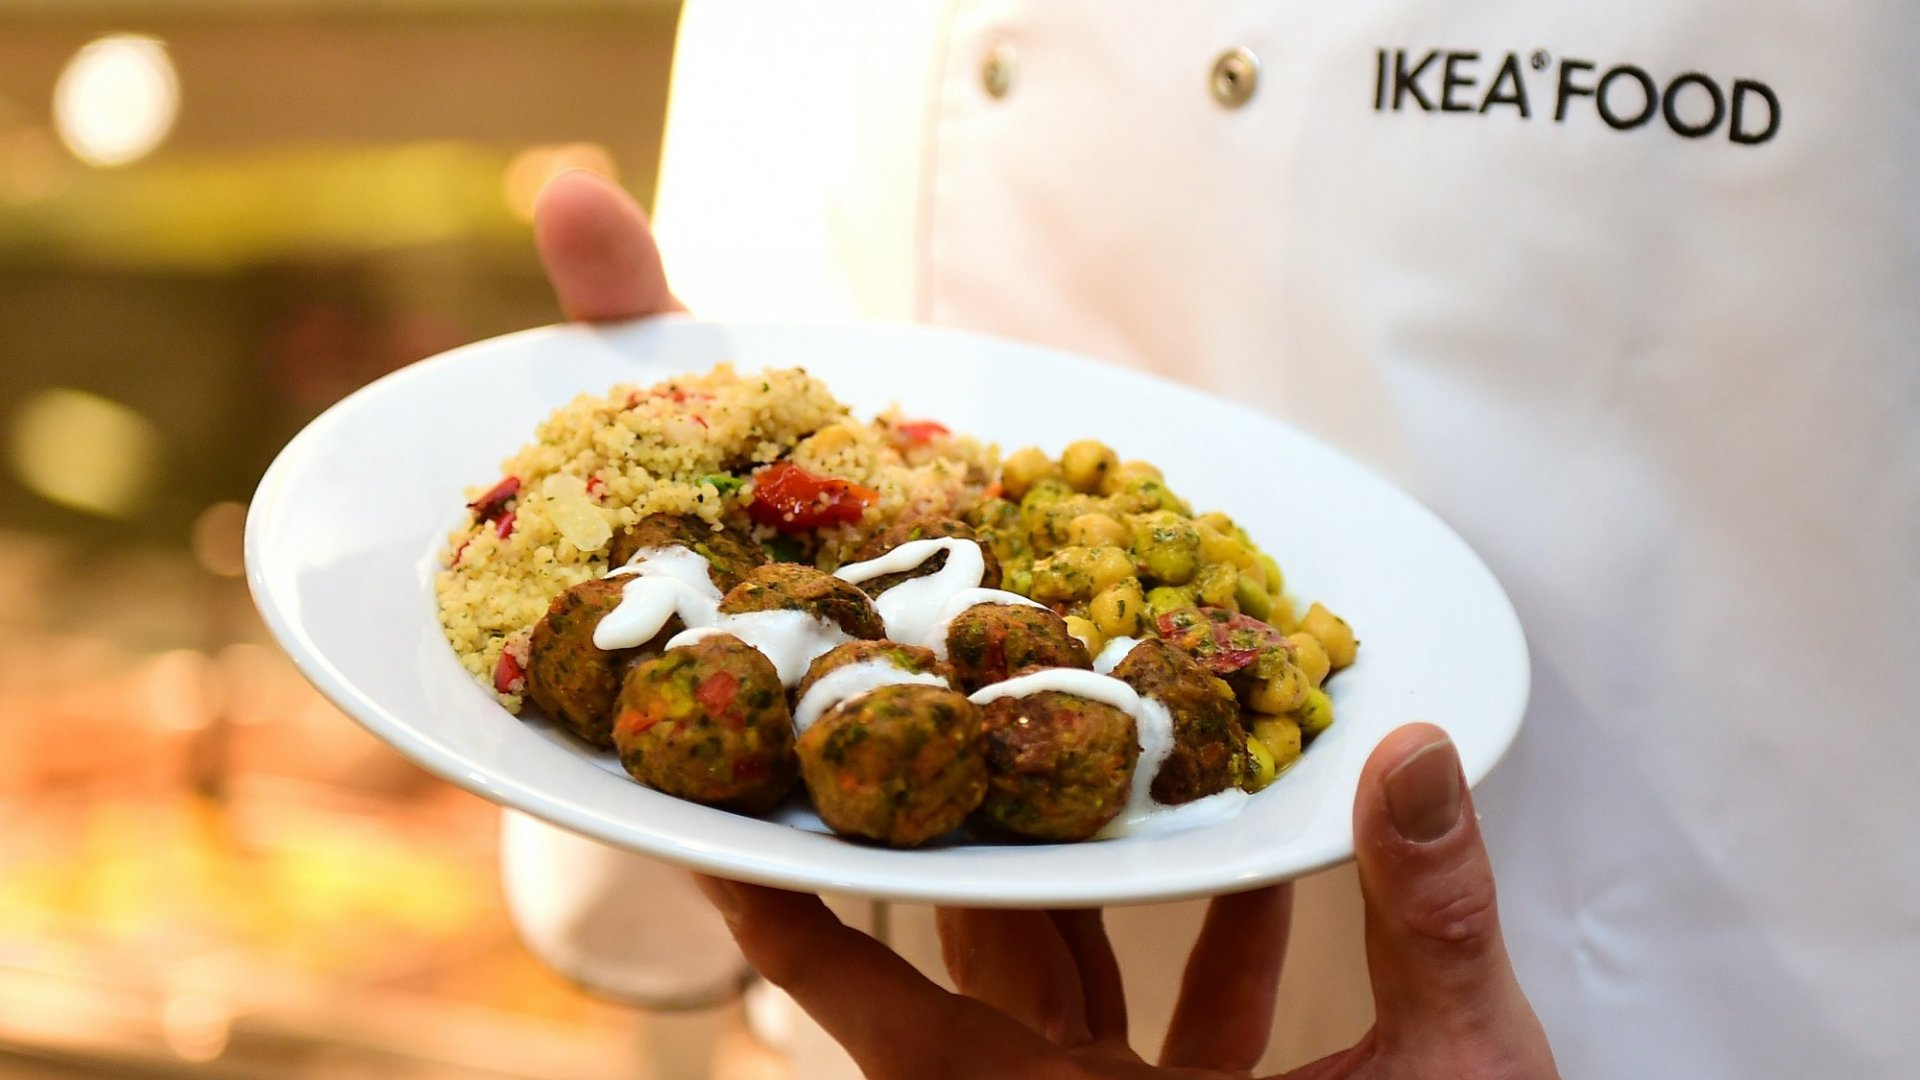 Ikea's New Meatballs Are Not for the Squeamish